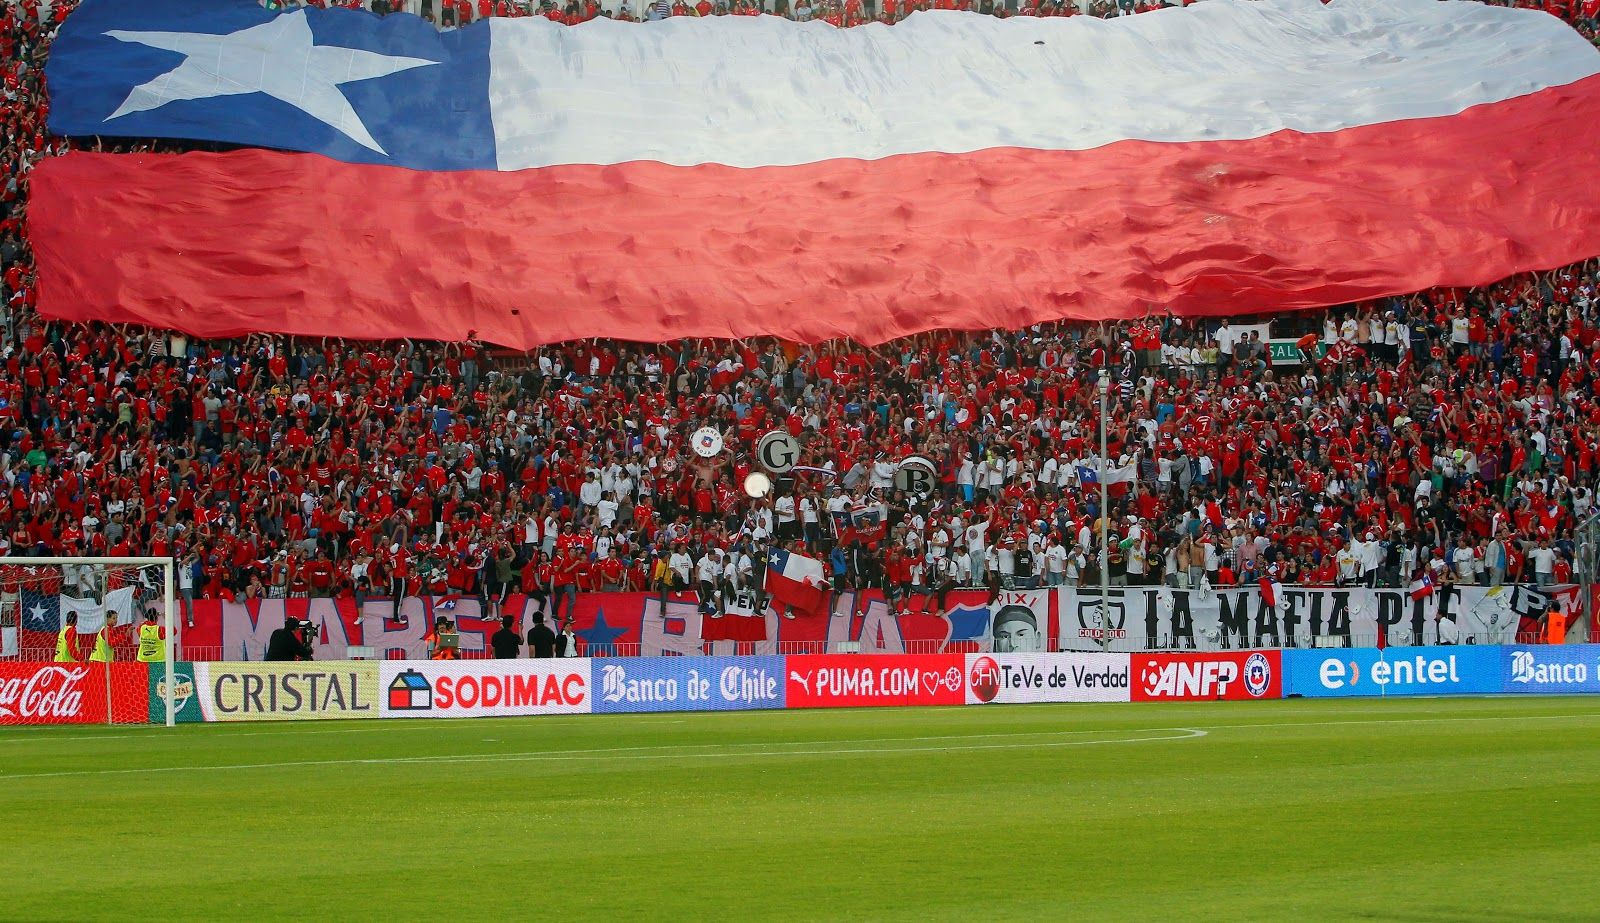 Estadios chile 2015 for Puerta 4 estadio nacional